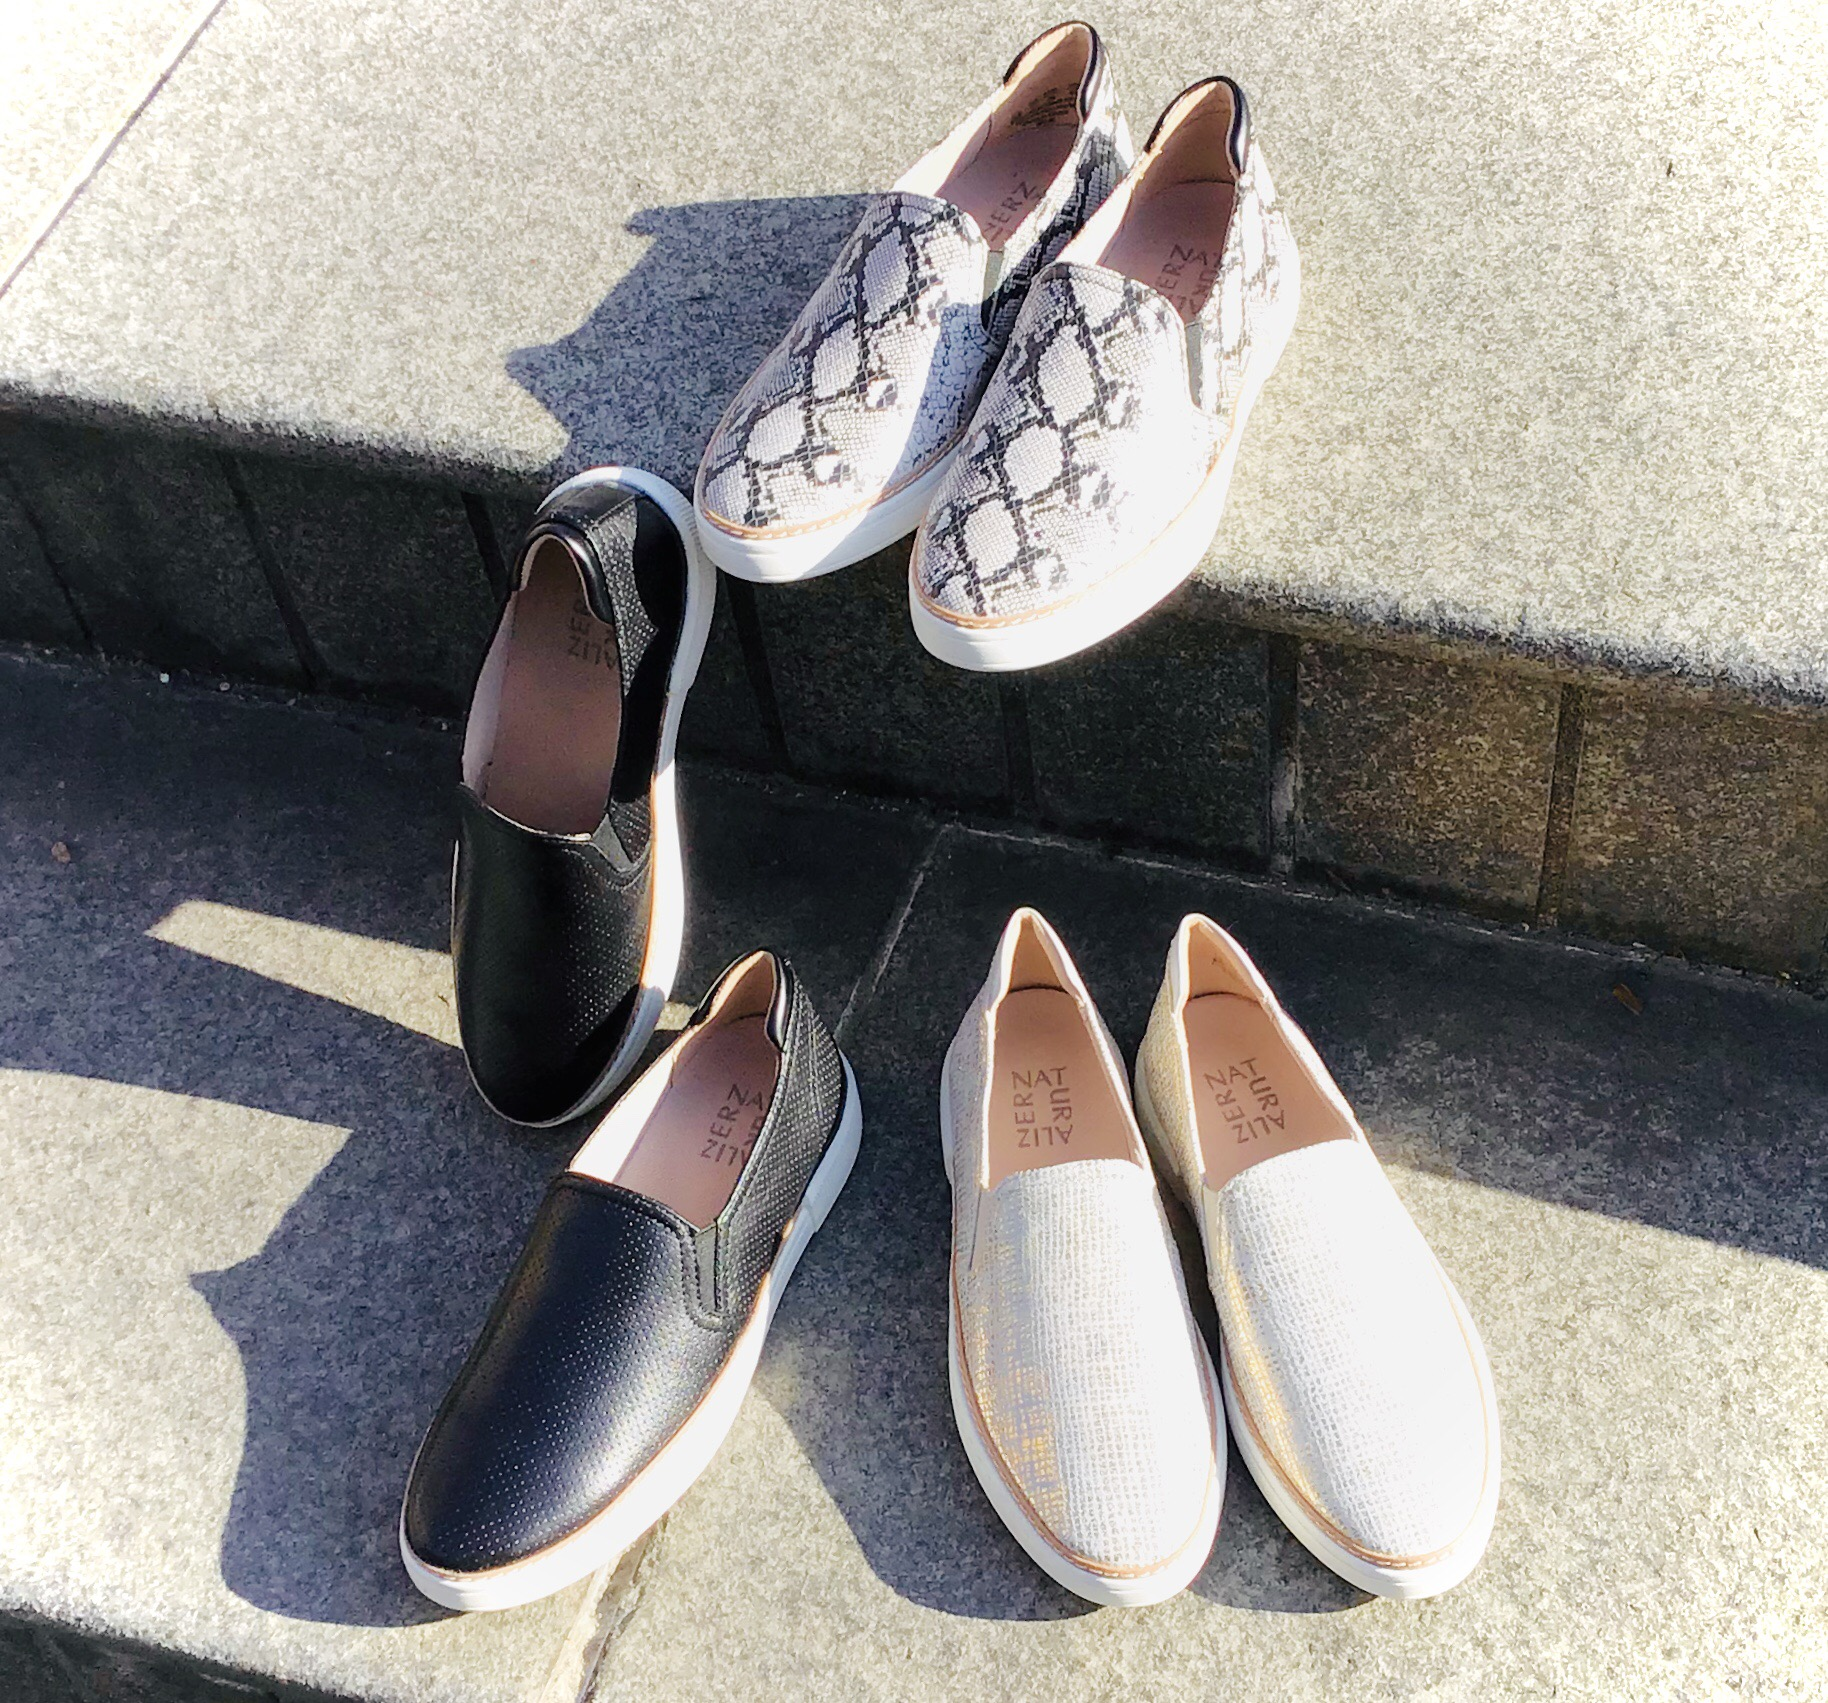 REGAL SHOES 毎日履きたいスニーカー①